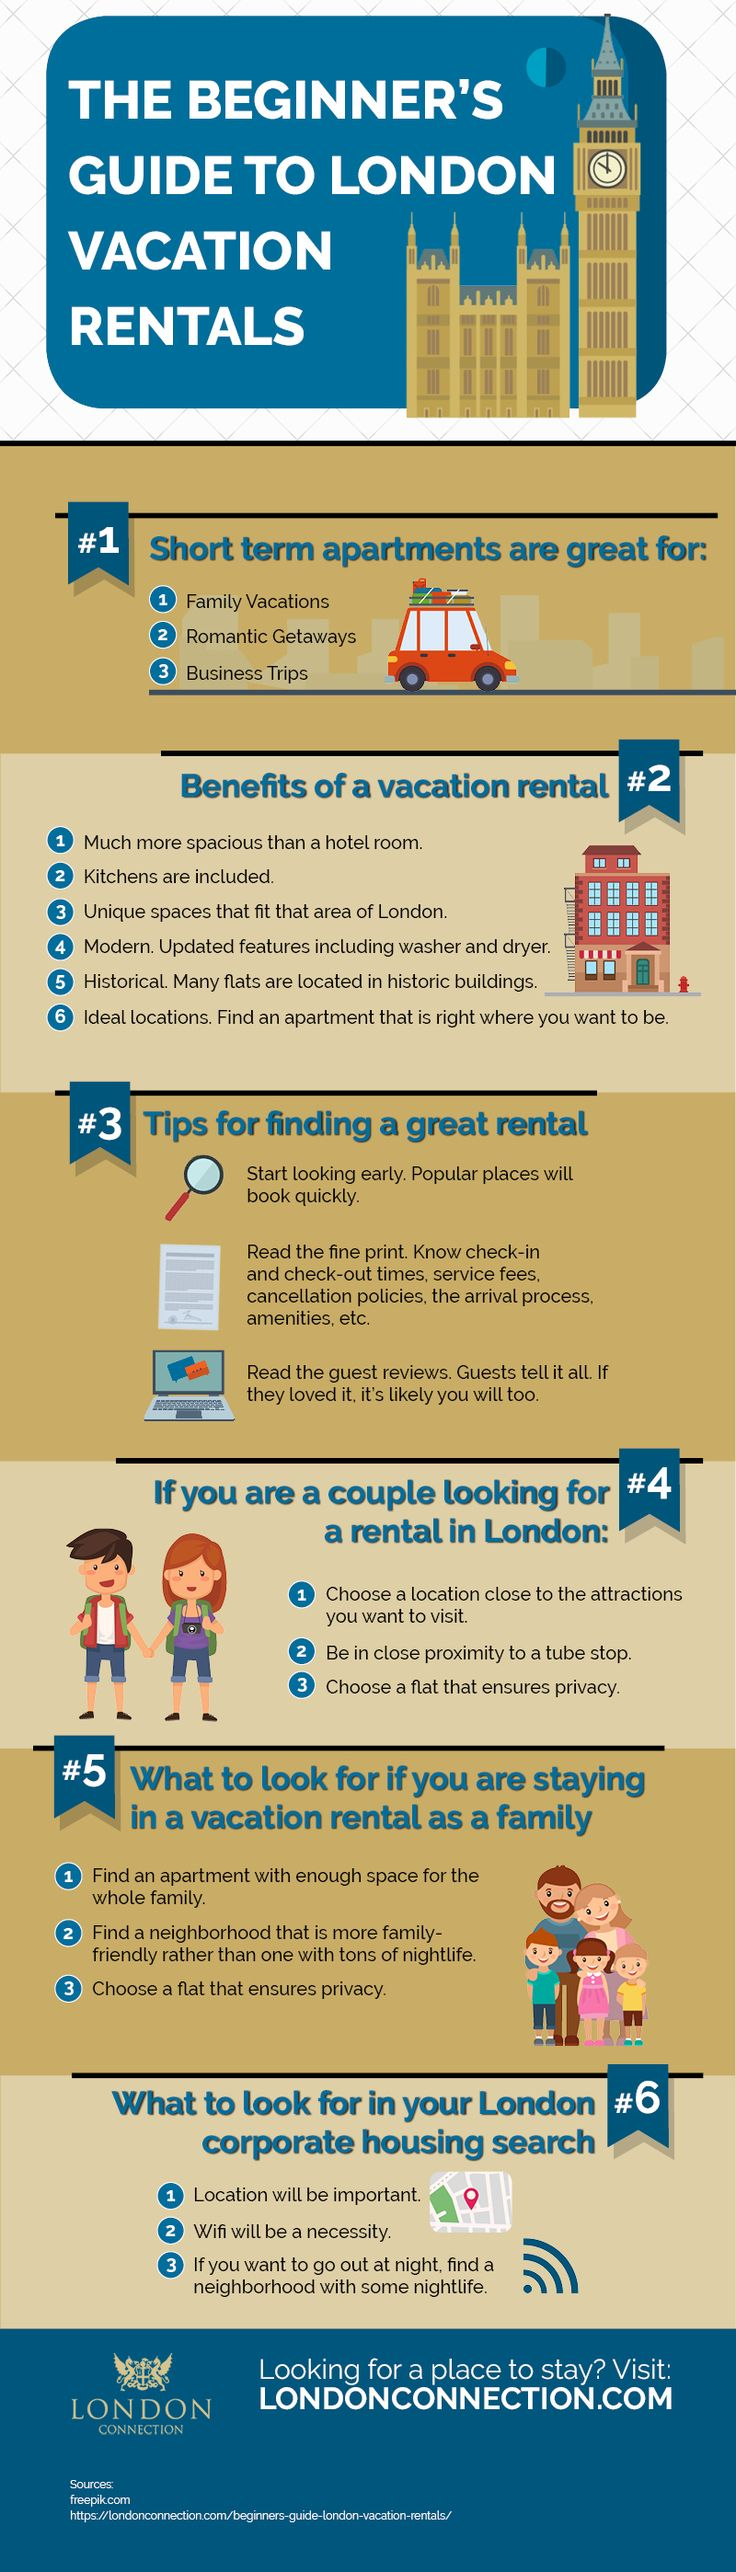 London Vacation rentals guide. Do you know what you should be looking for when you are looking to rent a short term apartment in London? Take a look at this London guide.